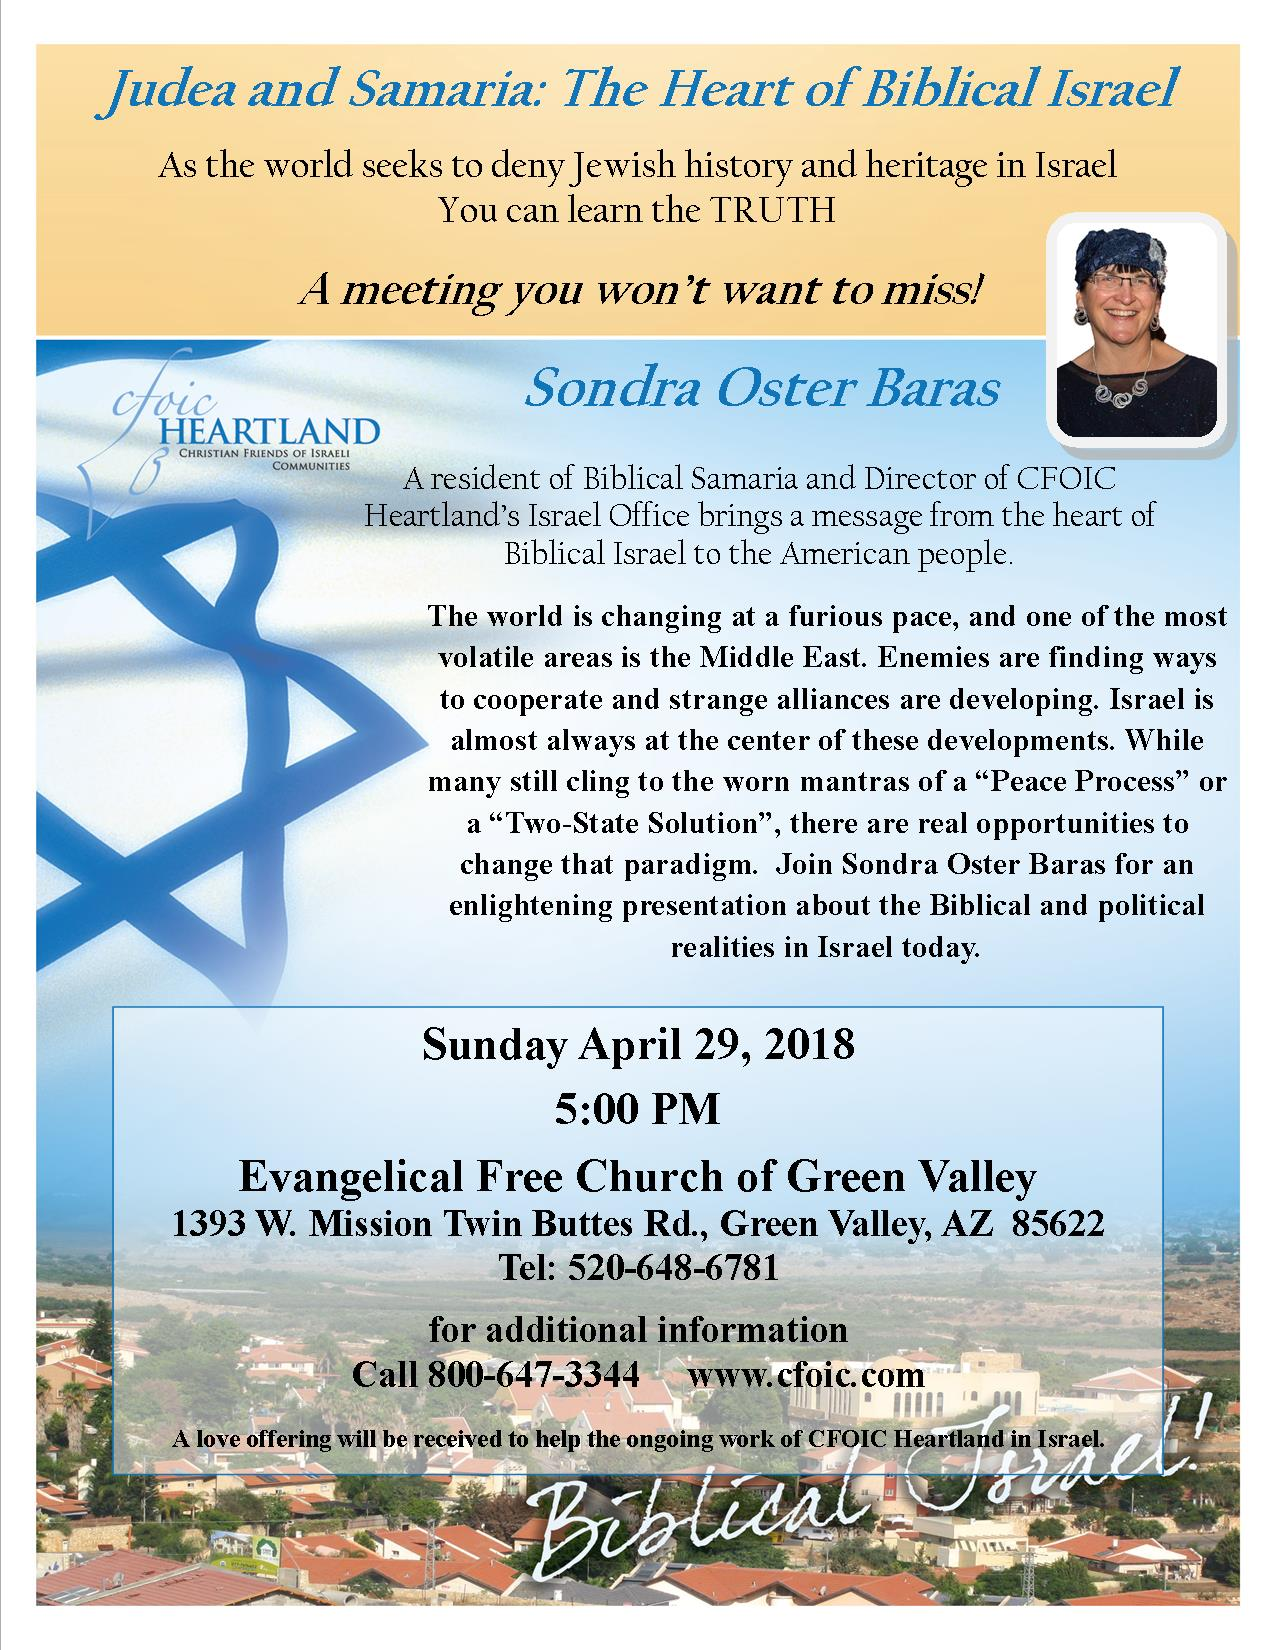 04-29-2018 Evangelical Free Church of Green Valley flyer